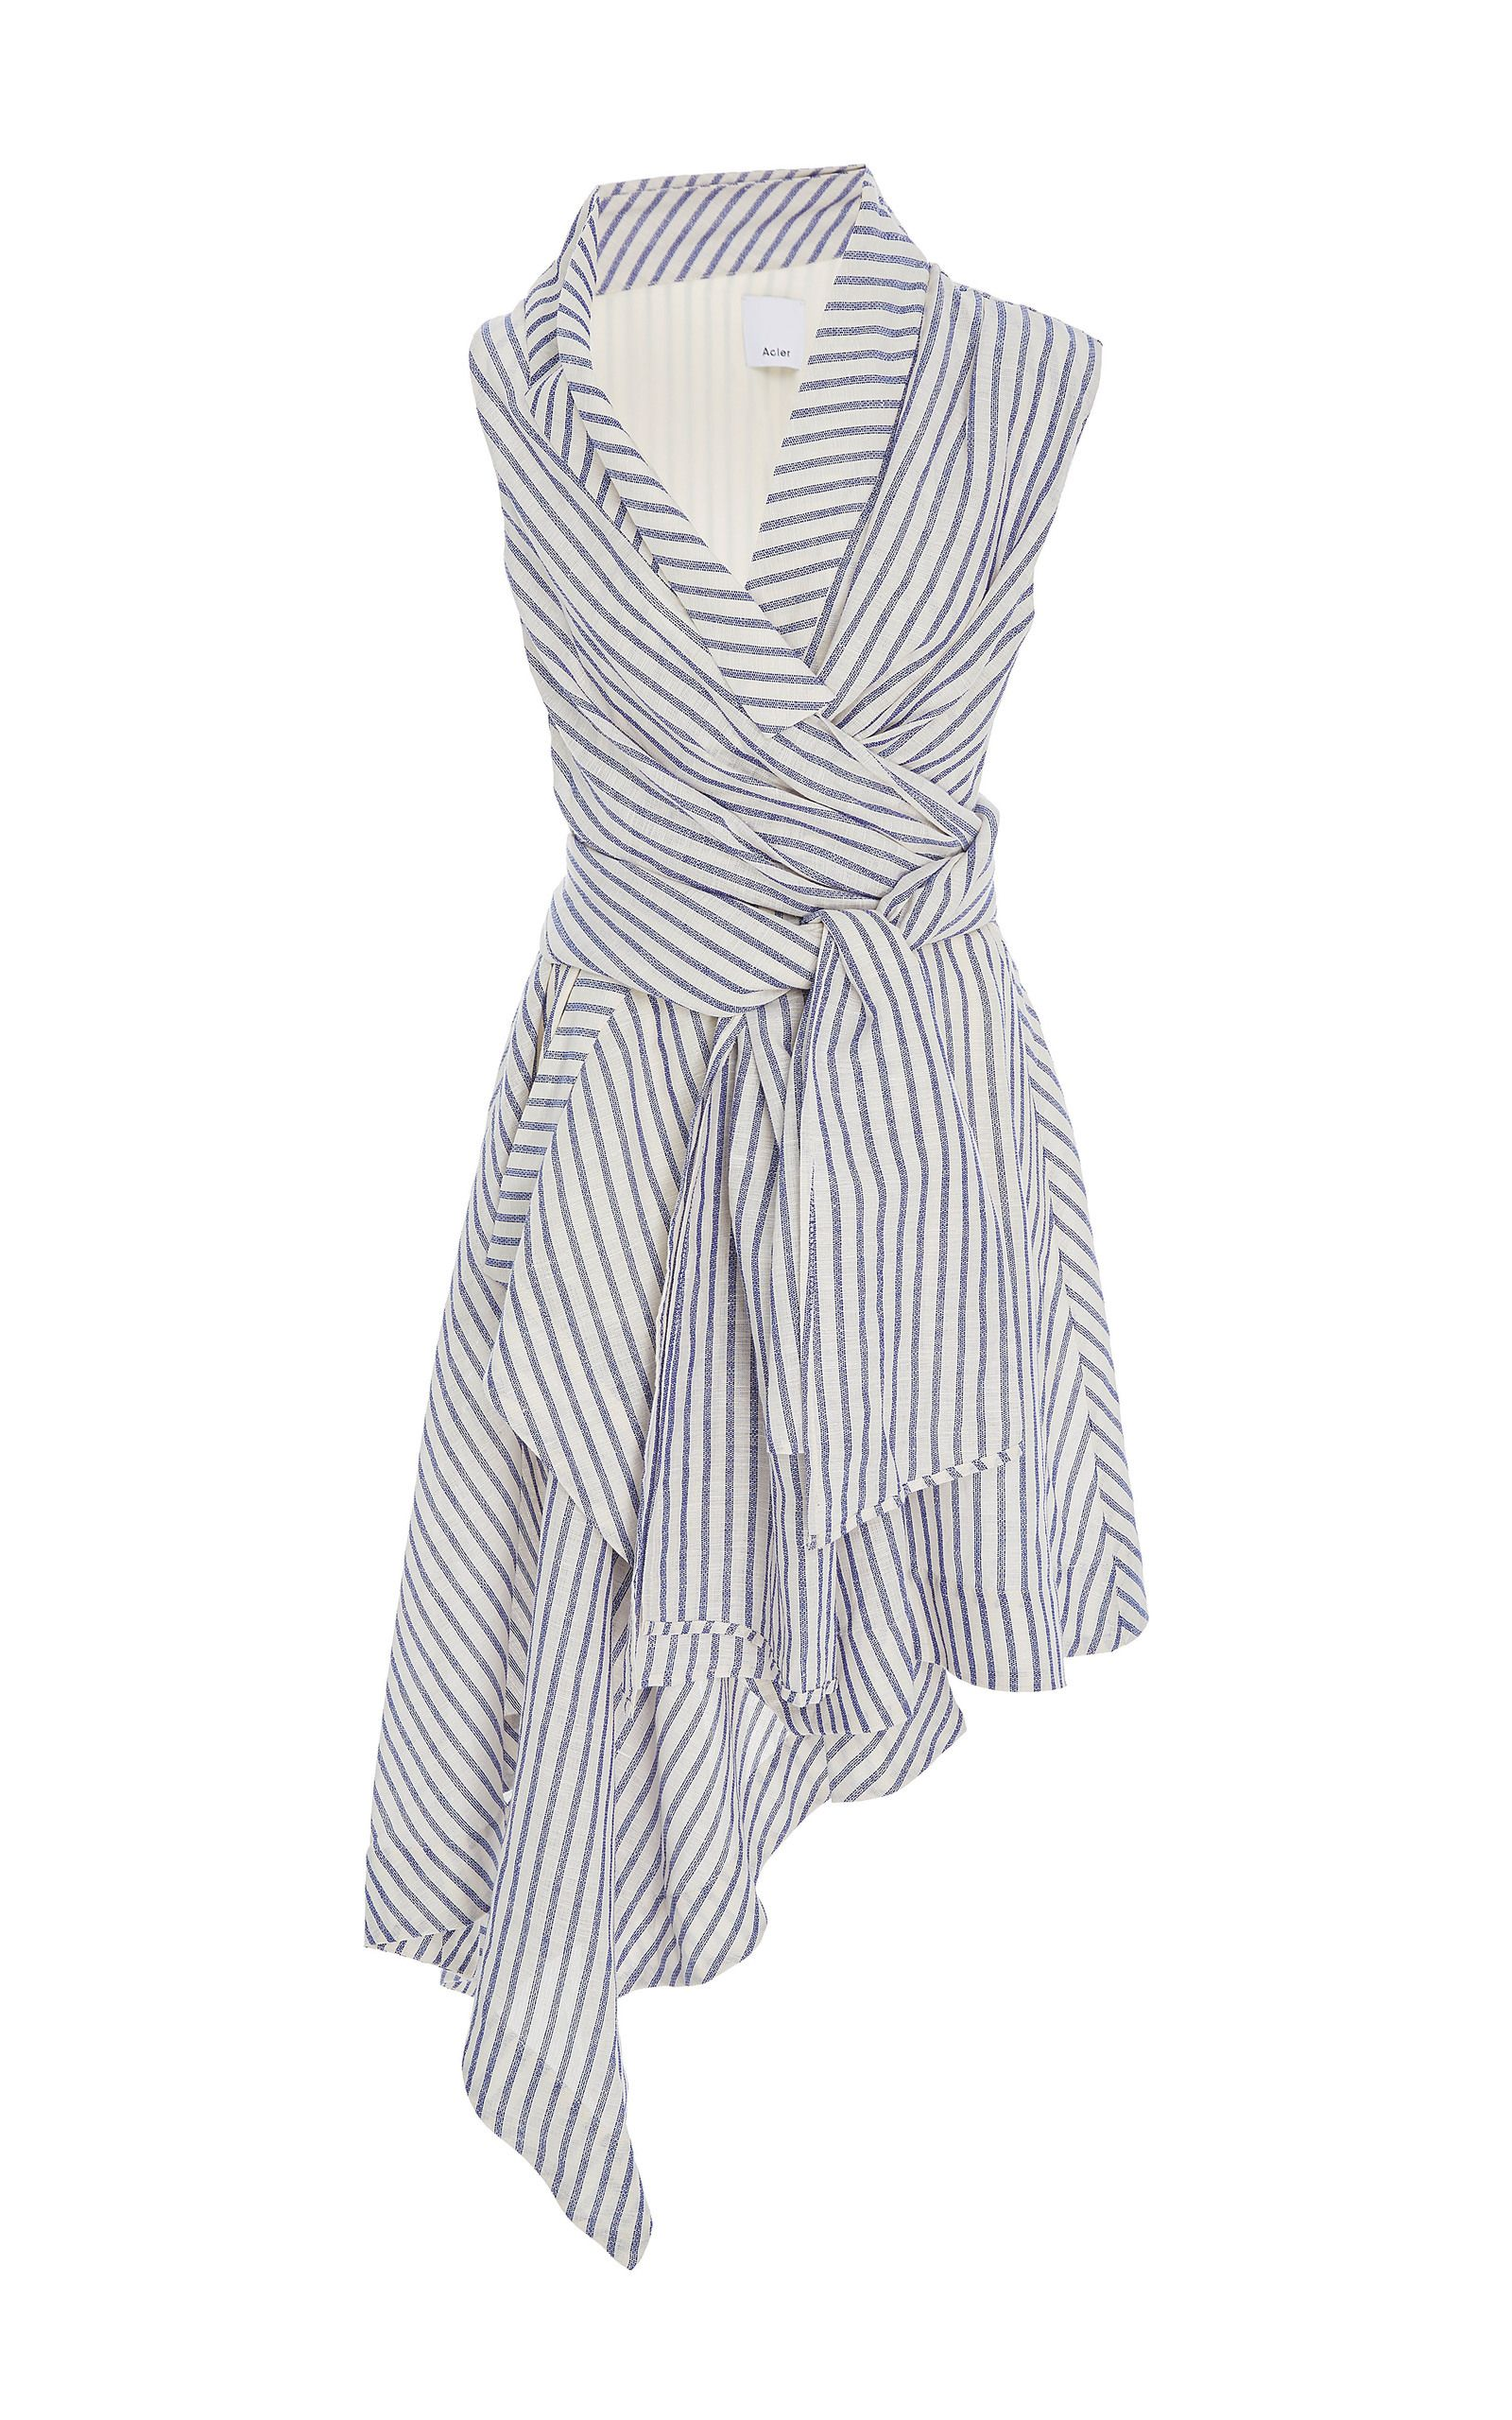 Acler Marene Shirt Dress (With images) Striped shirt